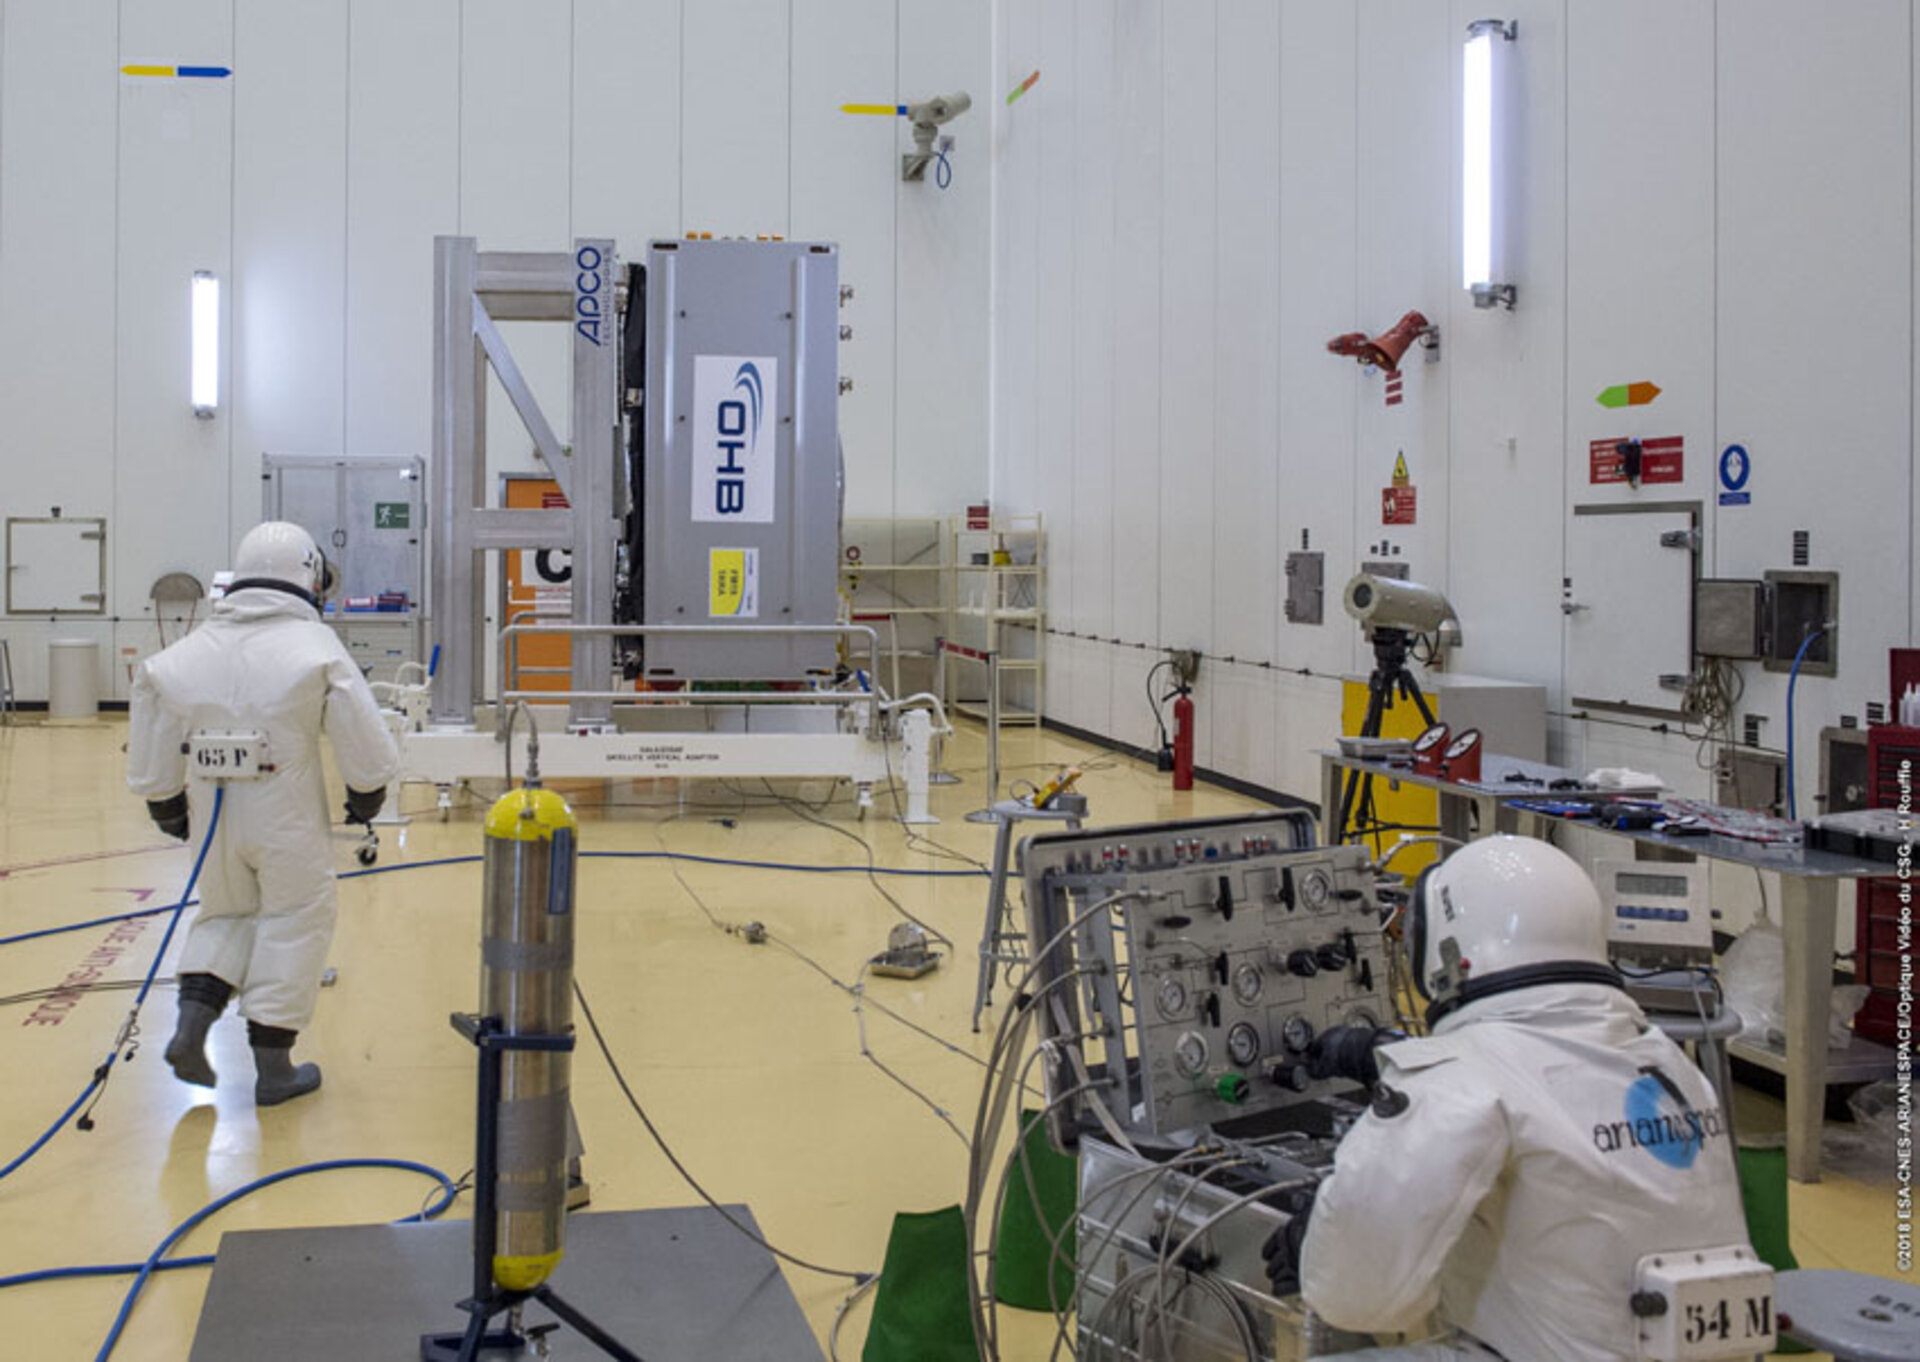 Fuelling Galileo satellites